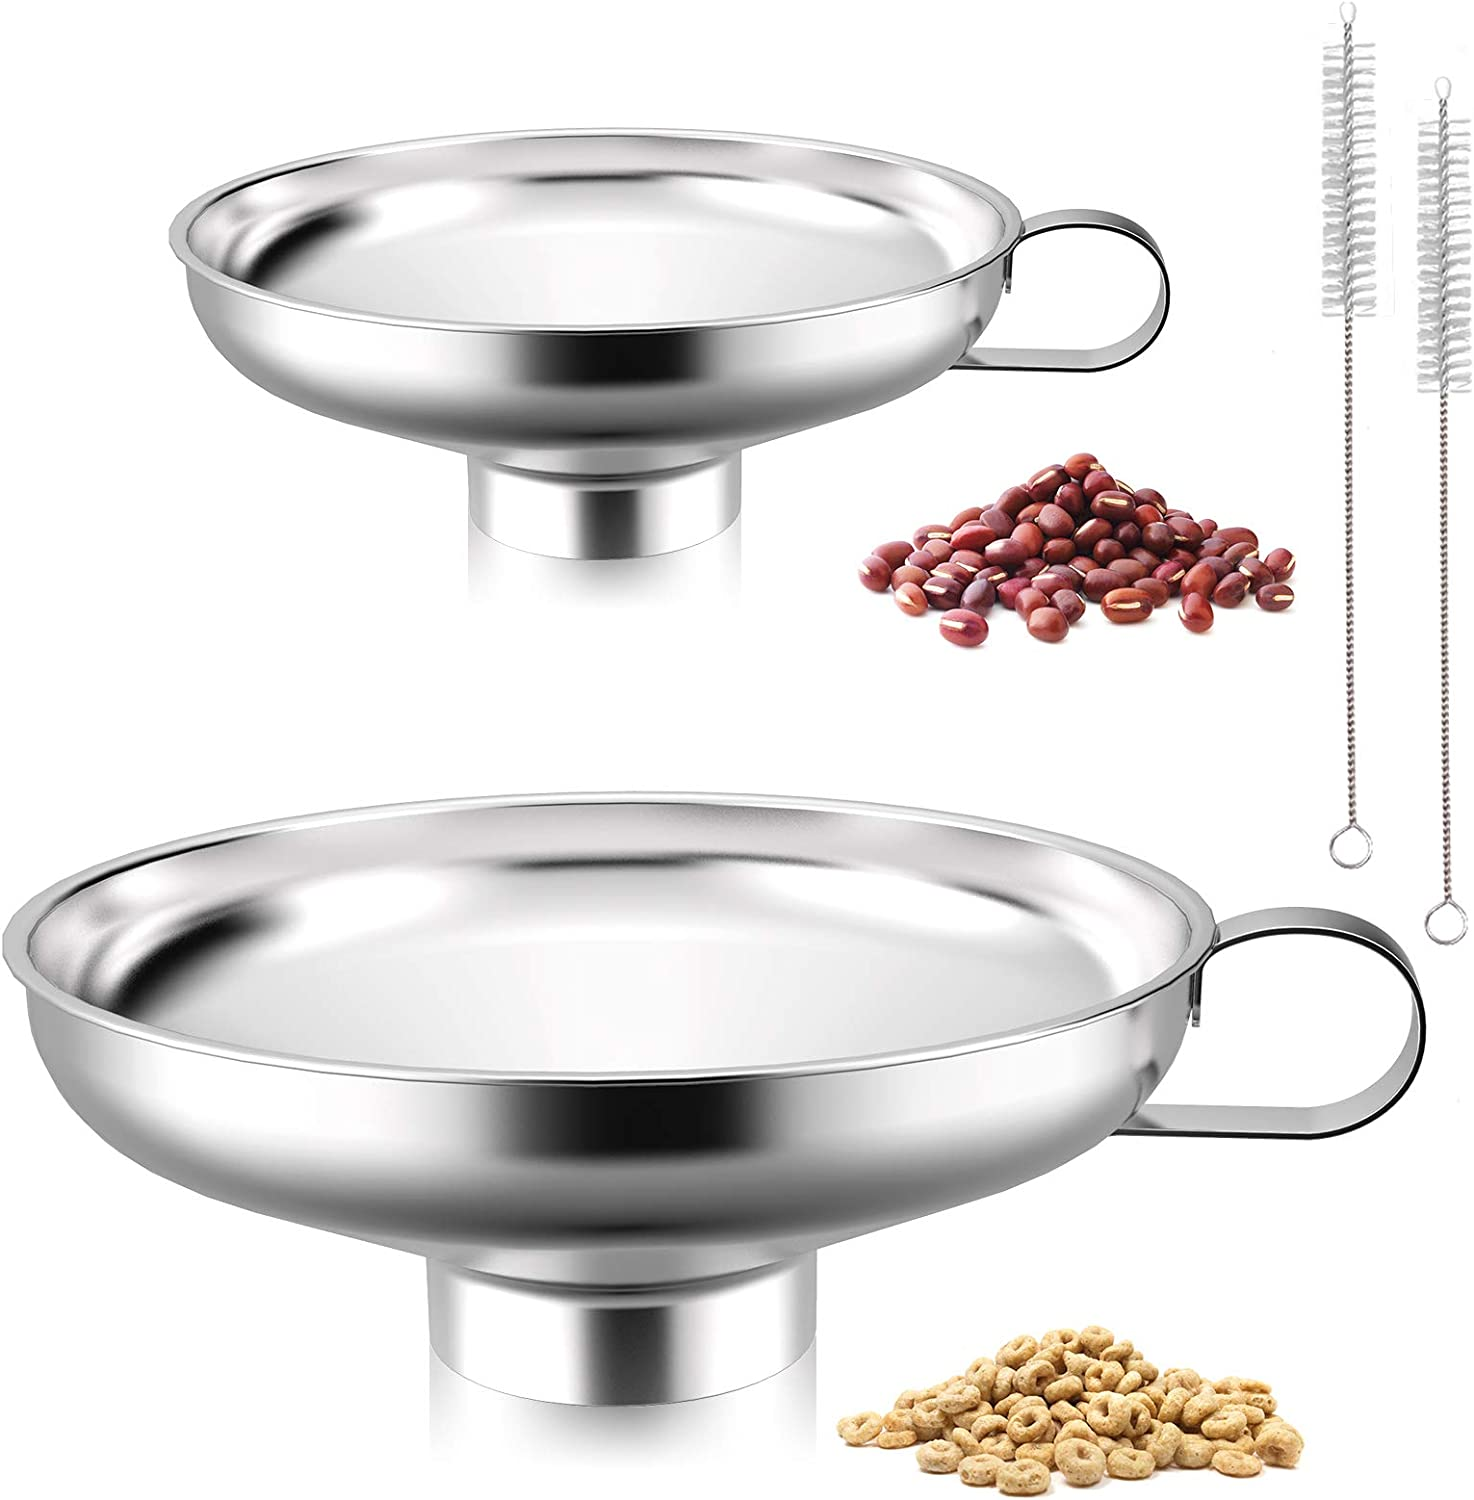 2 Pack Set Canning Funnel Stainless Steel Kitchen Food Grade Metal with Handle & 2PK Brush, Transferring Cooking Oils Liquid Fluid Dry Ingredients, for Regular Wide-Mouth Mason Jar, Neck 2.1'' & 1.4''